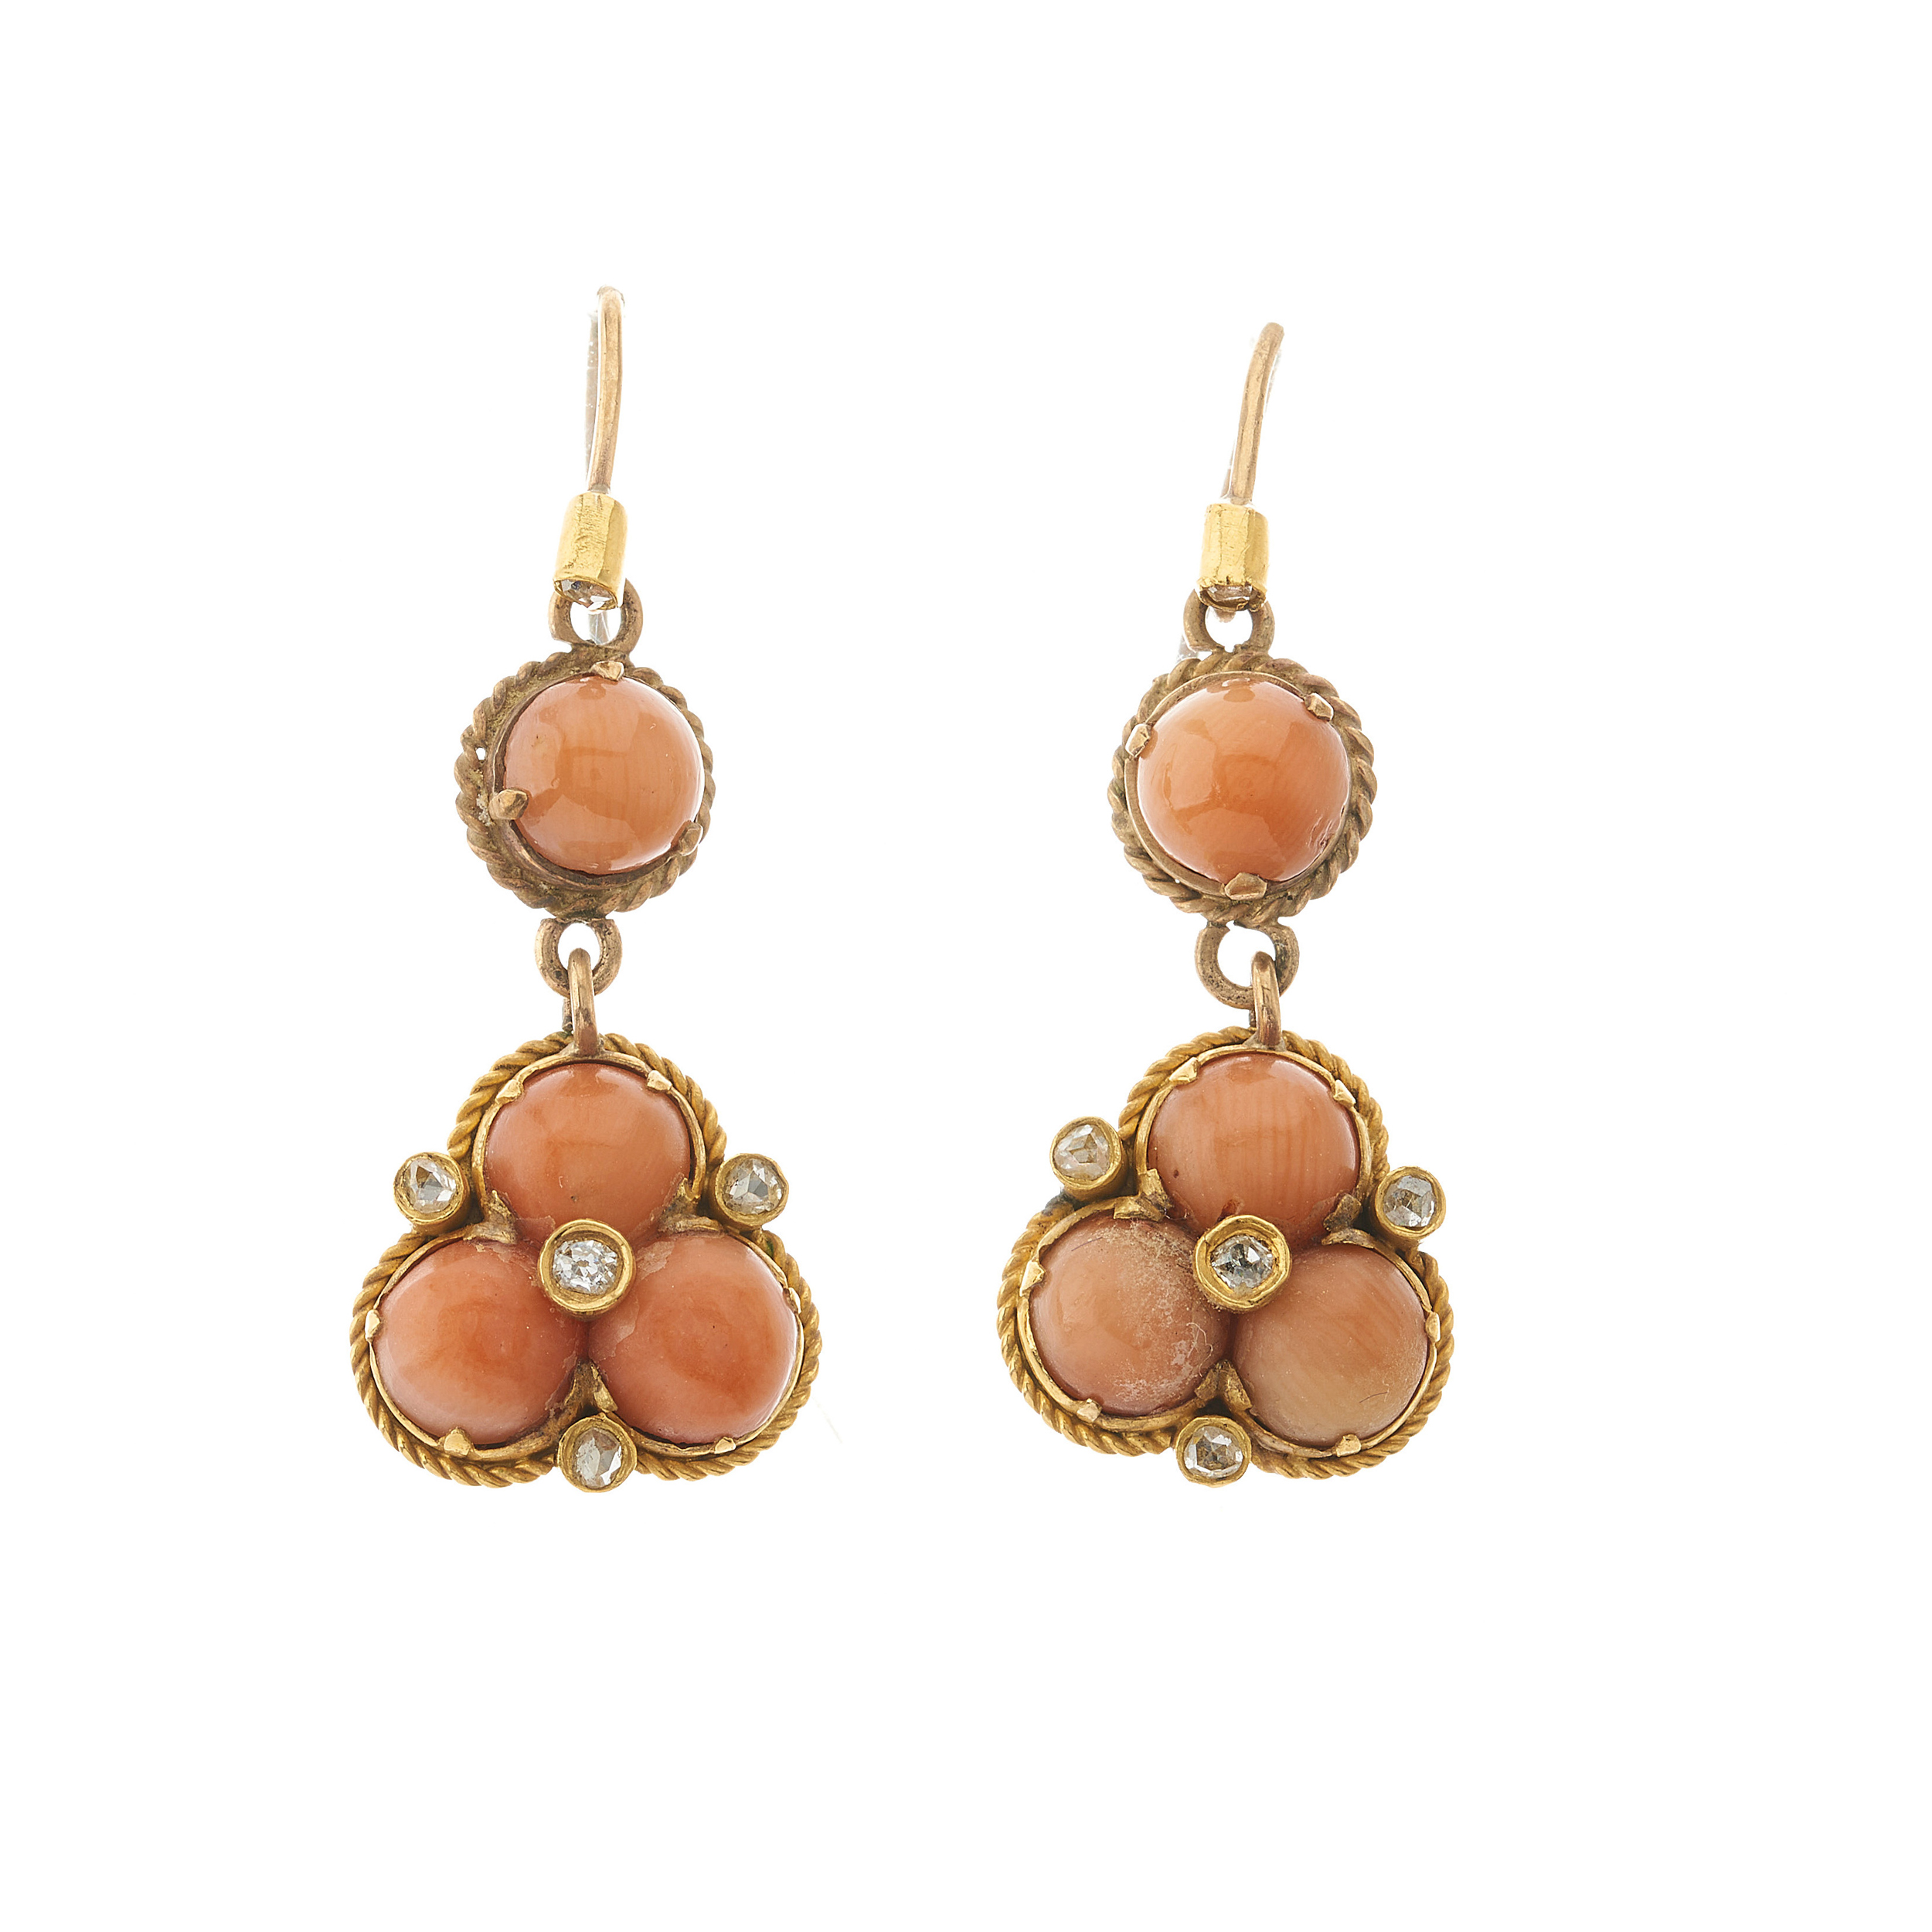 A pair of late 19th century gold, coral and diamond drop earrings